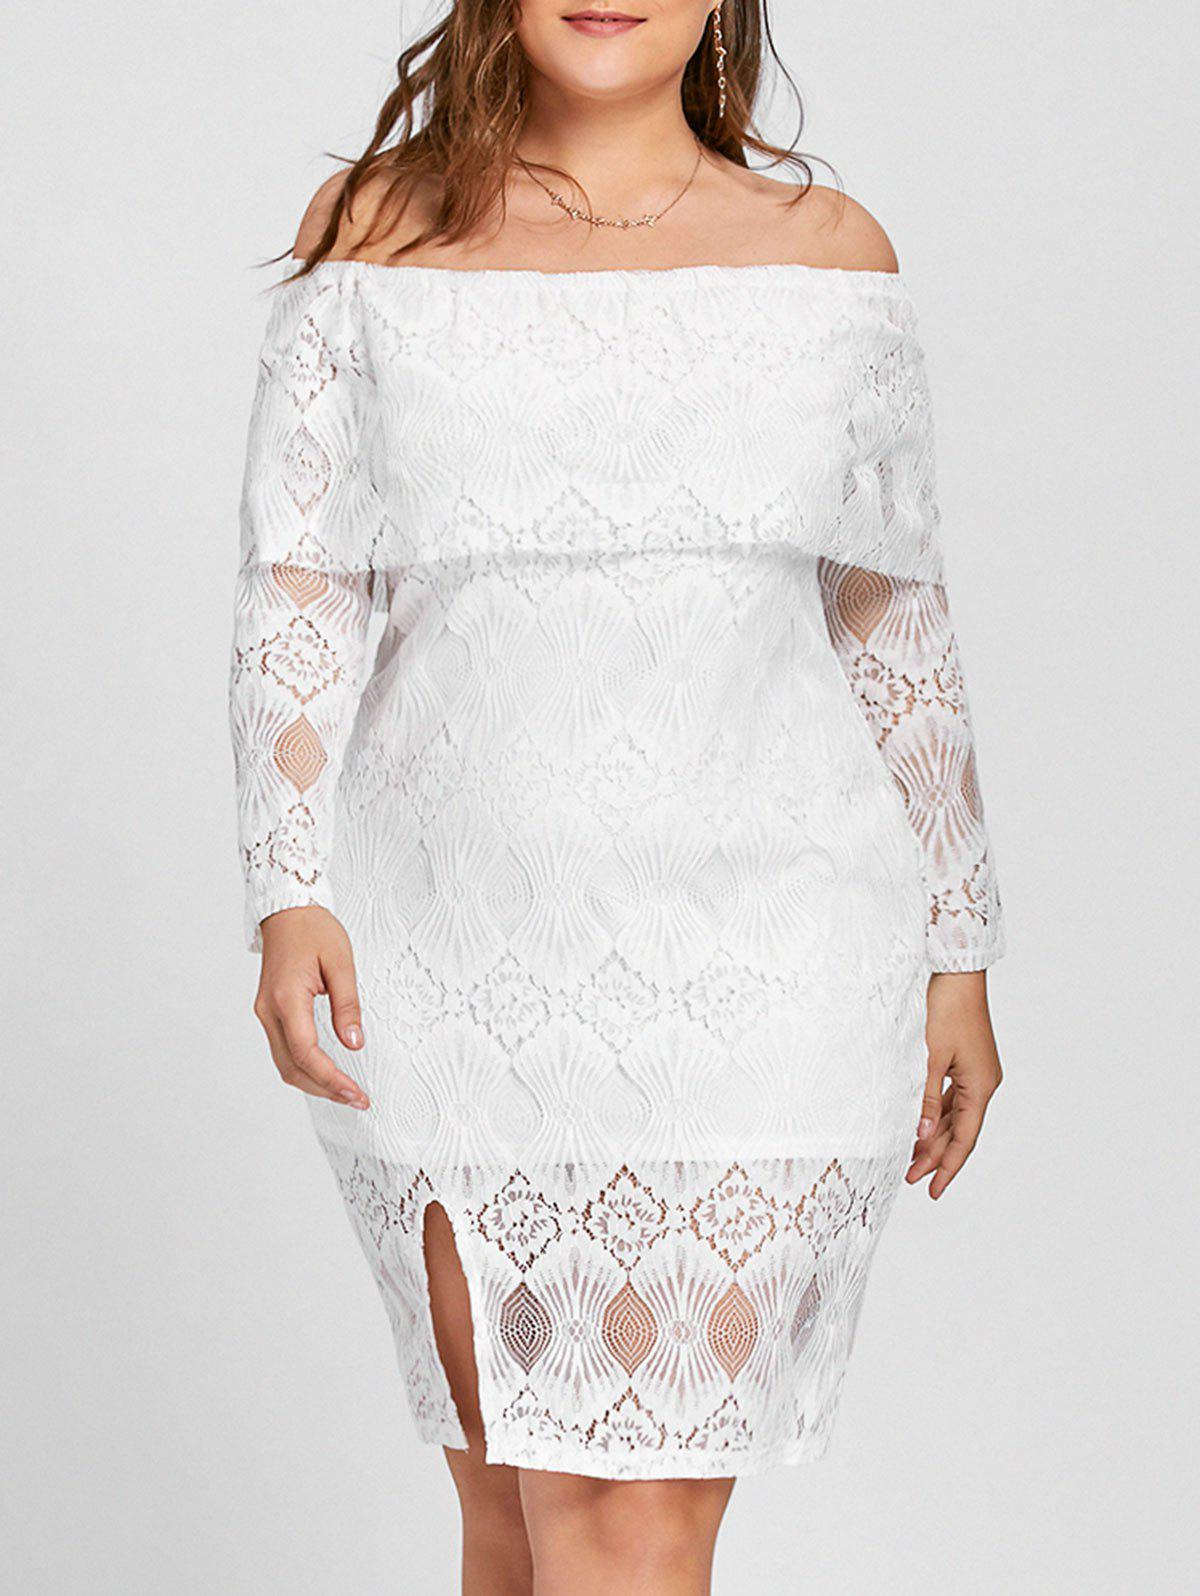 Plus Size Lace Off The Shoulder Flounce DressWOMEN<br><br>Size: 2XL; Color: WHITE; Style: Casual; Material: Cotton,Polyester; Silhouette: Sheath; Dresses Length: Knee-Length; Neckline: Off The Shoulder; Sleeve Length: Long Sleeves; Embellishment: Lace; Pattern Type: Solid; With Belt: No; Season: Fall; Weight: 0.4350kg; Package Contents: 1 x Dress;